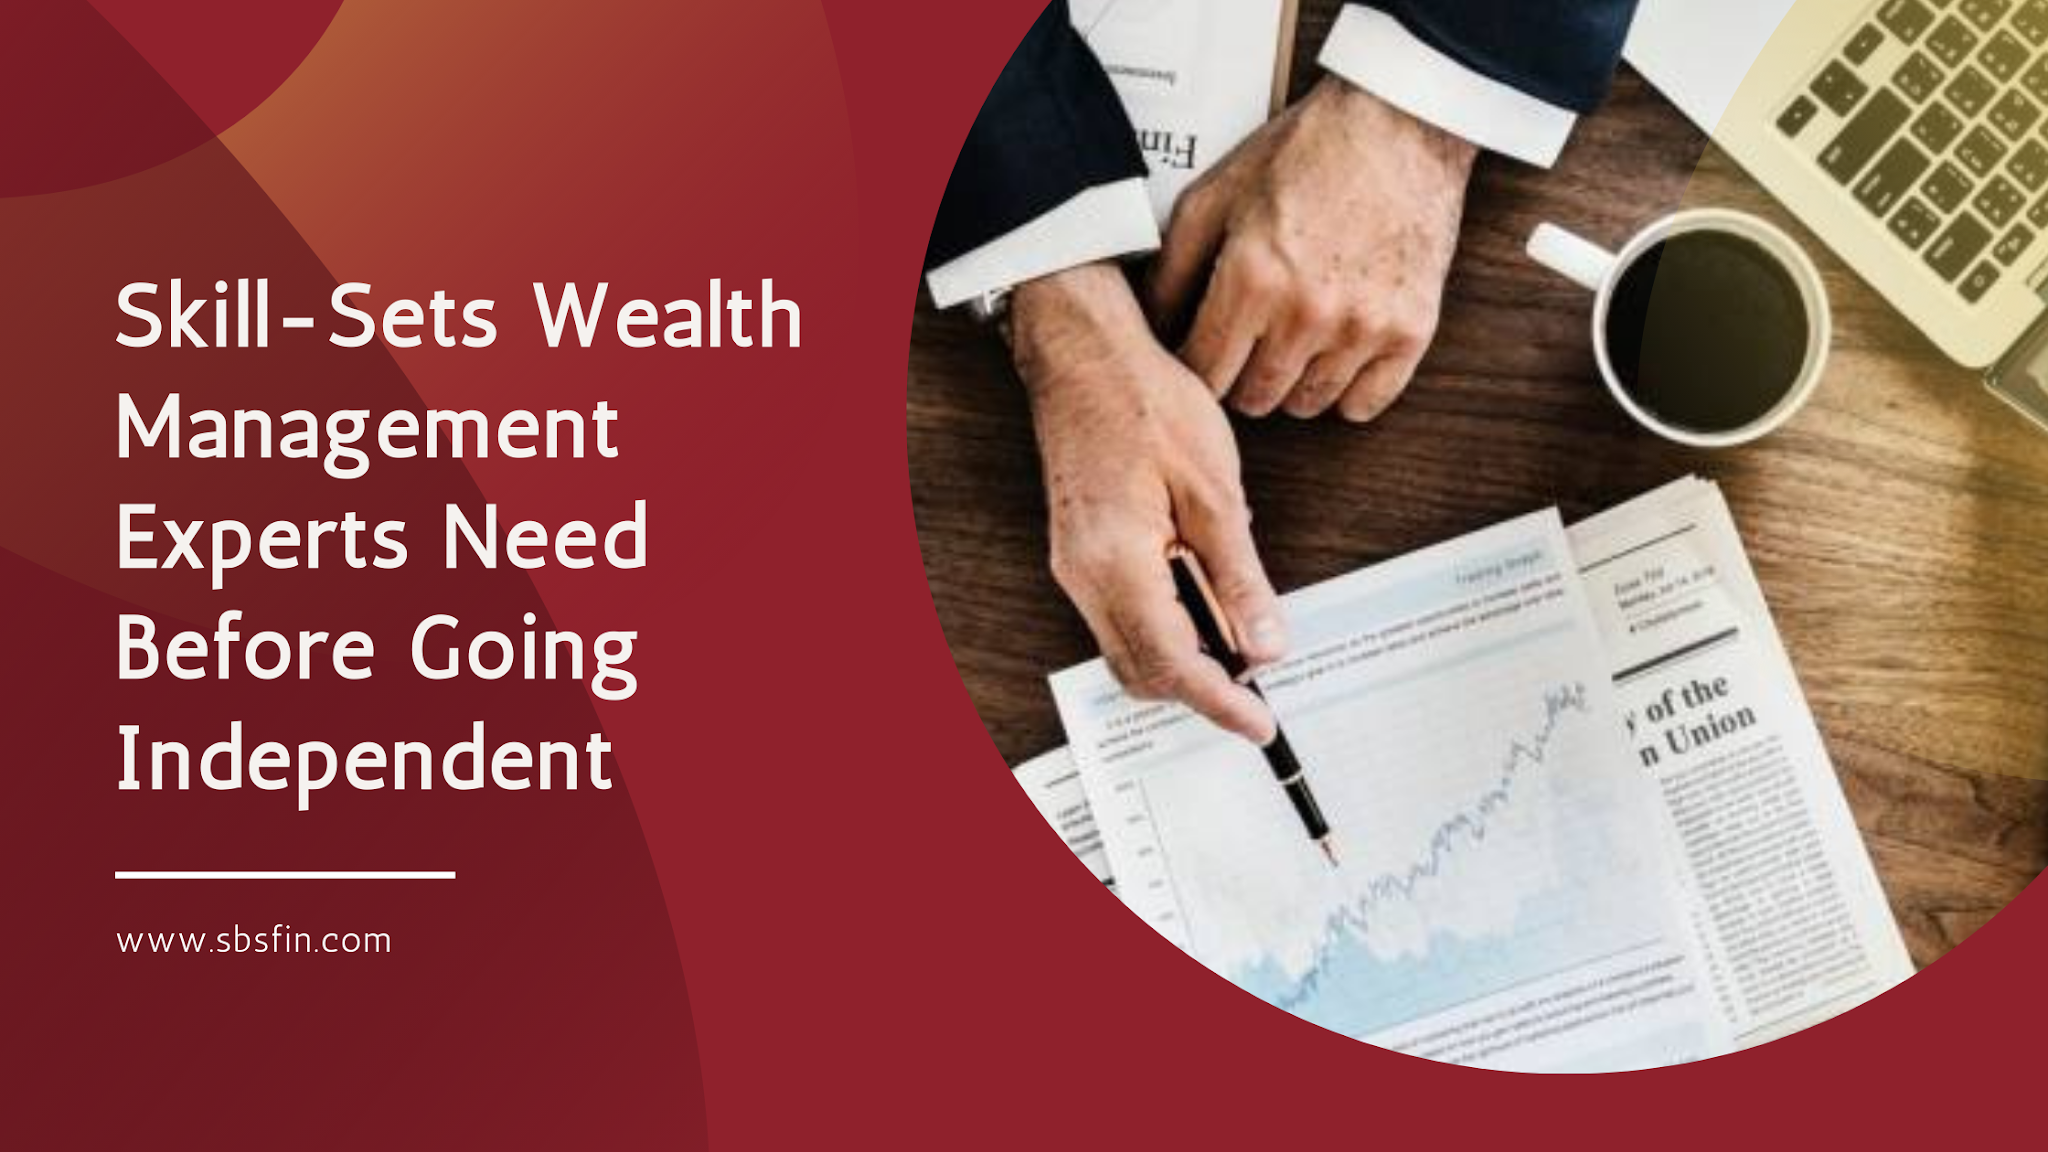 Skill-Sets Wealth Management Experts Need Before Going Independent